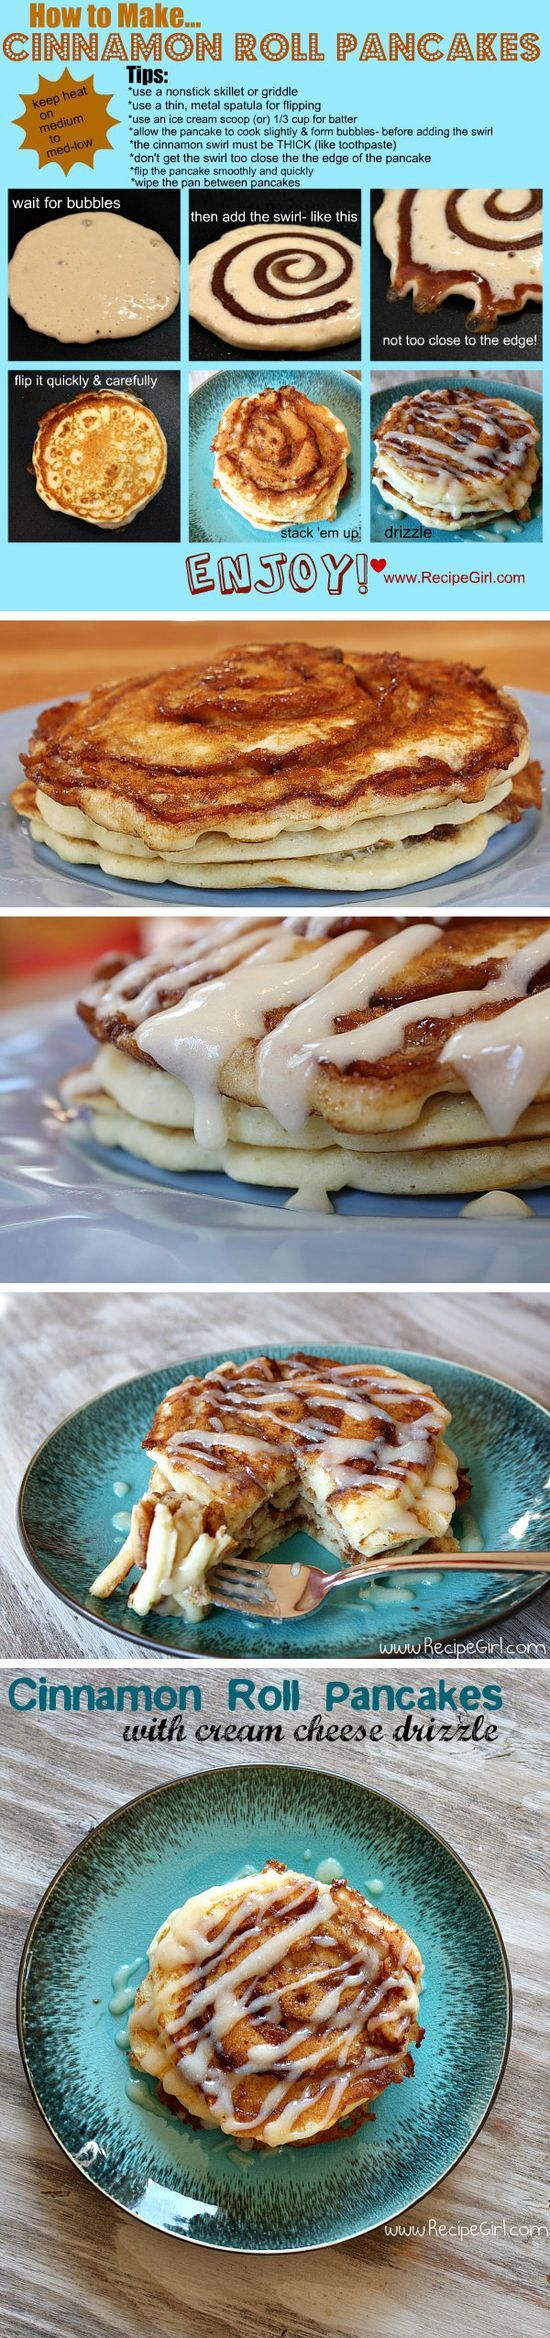 Diy Home Decor: Cinnamon Roll Pancakes - Recipe Girl